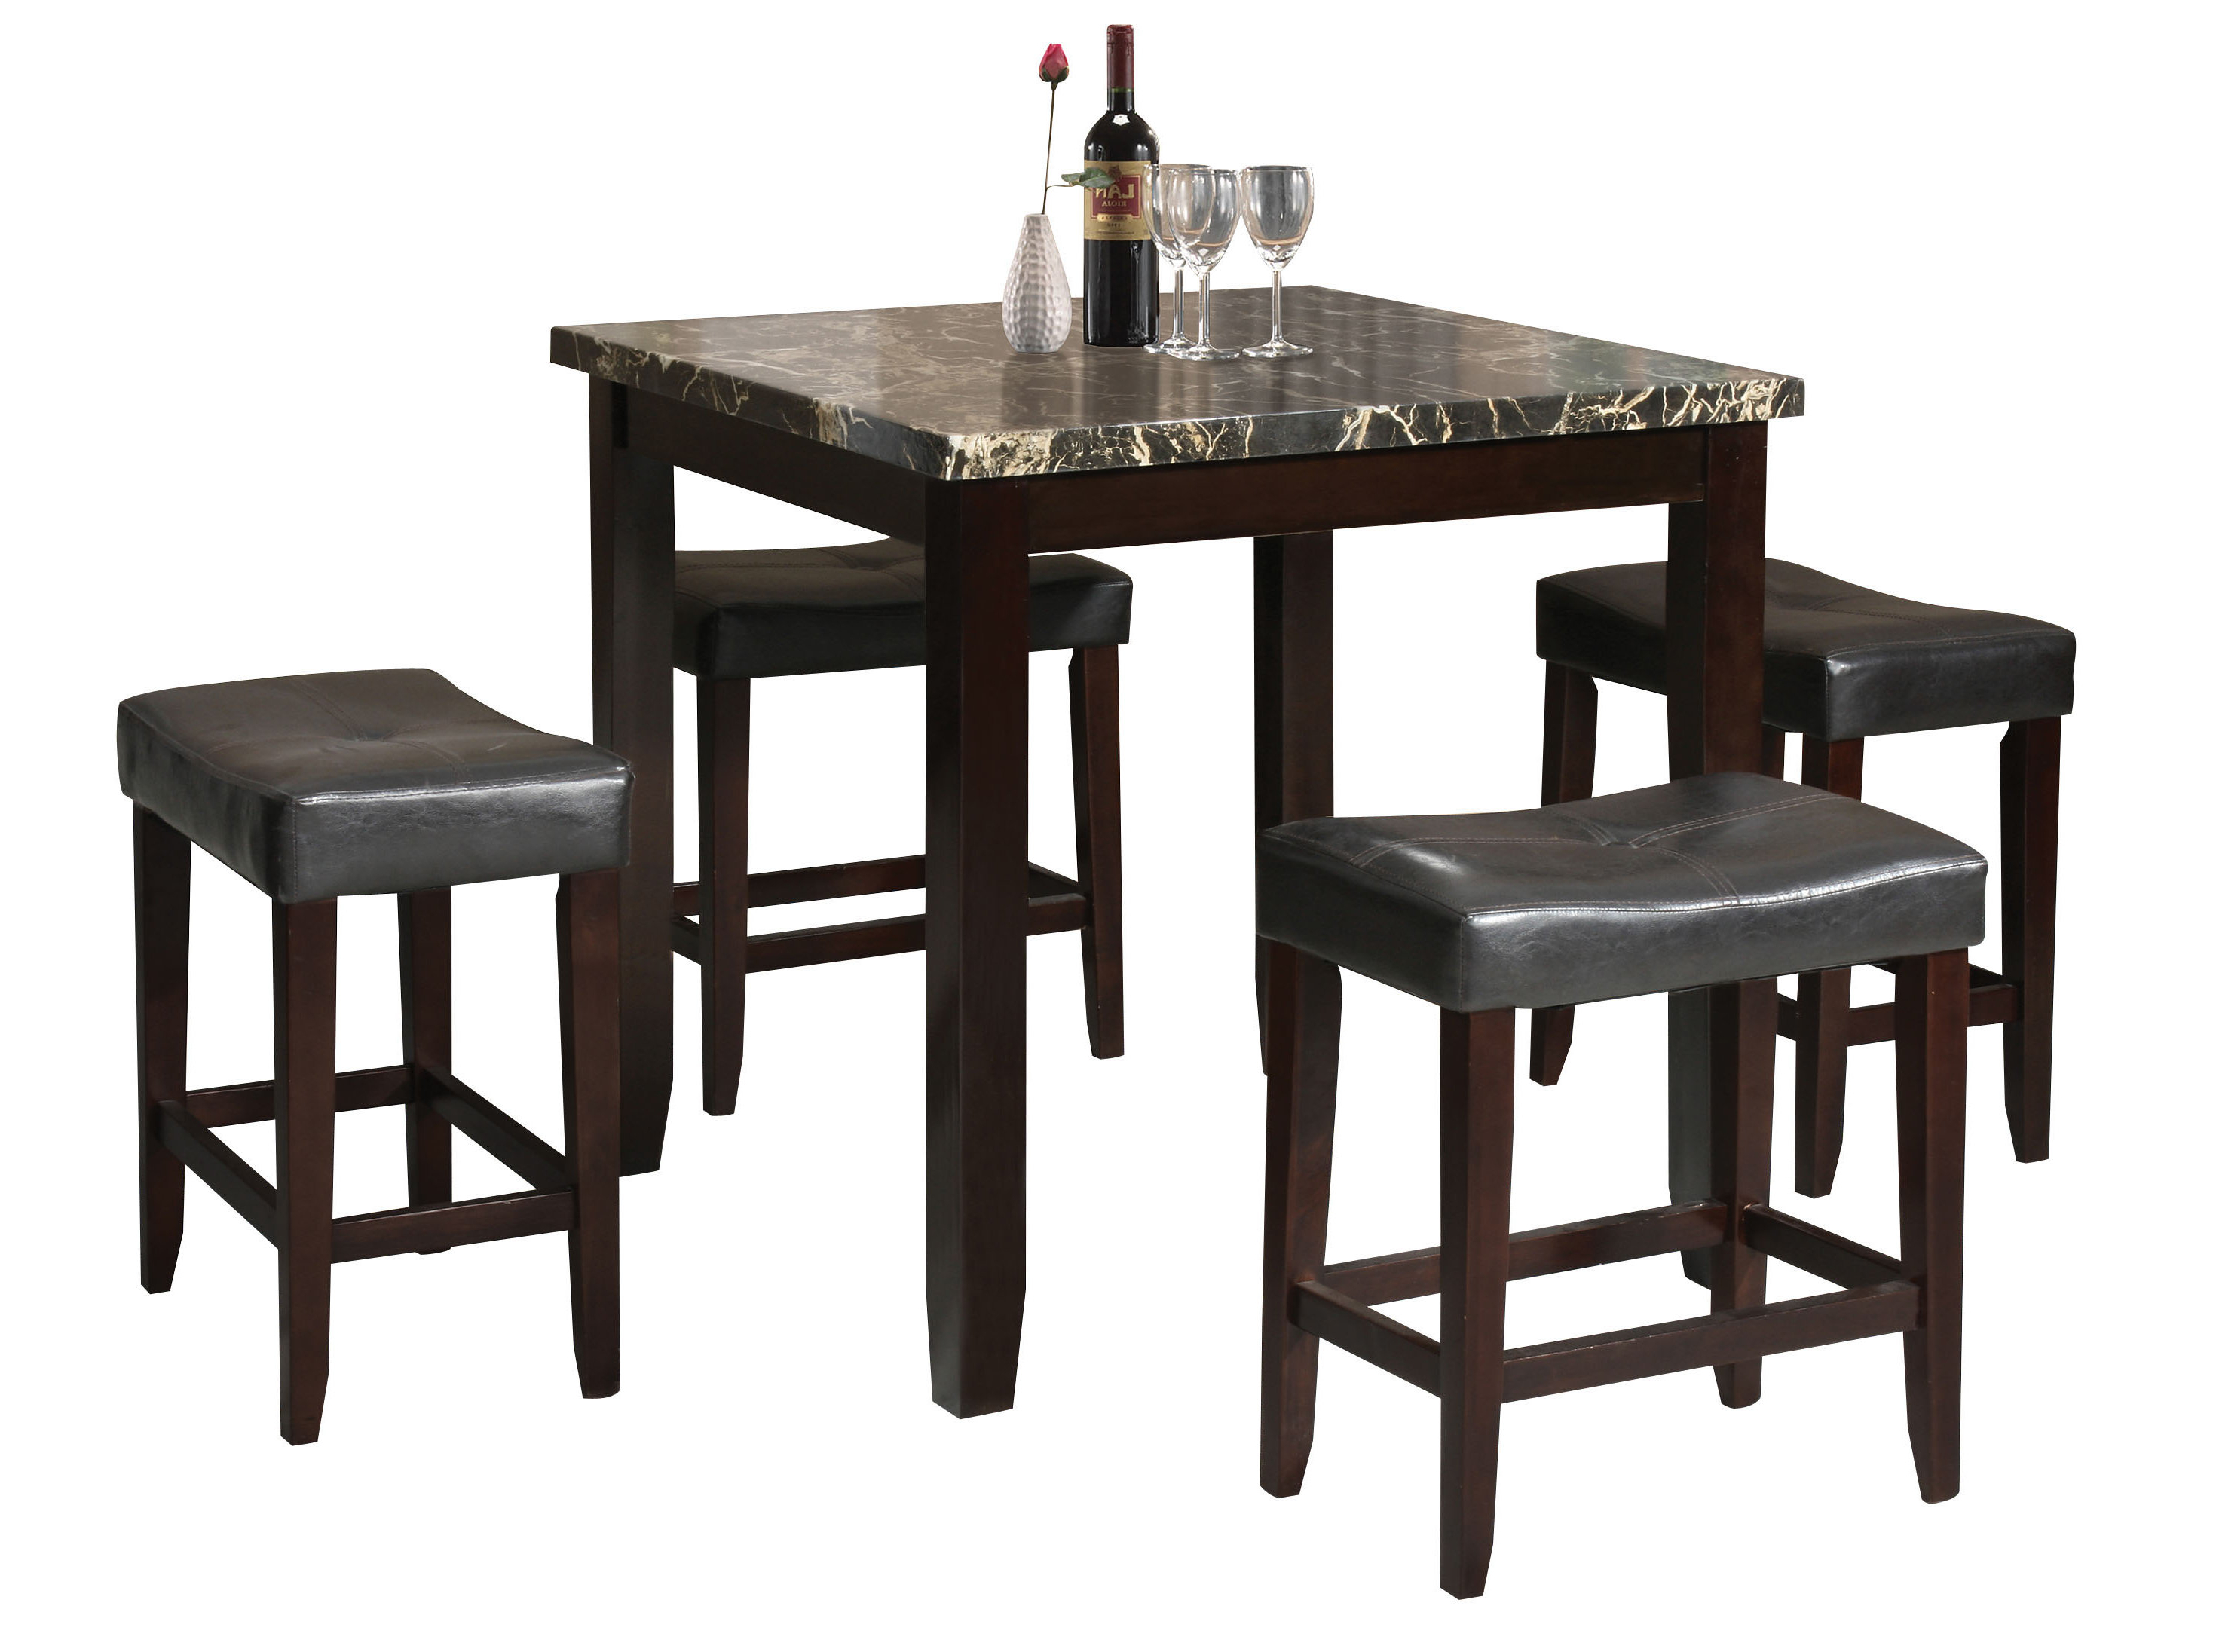 Nutter 3 Piece Dining Sets Pertaining To 2020 Dehaven 5 Piece Counter Height Dining Set & Reviews (View 15 of 25)